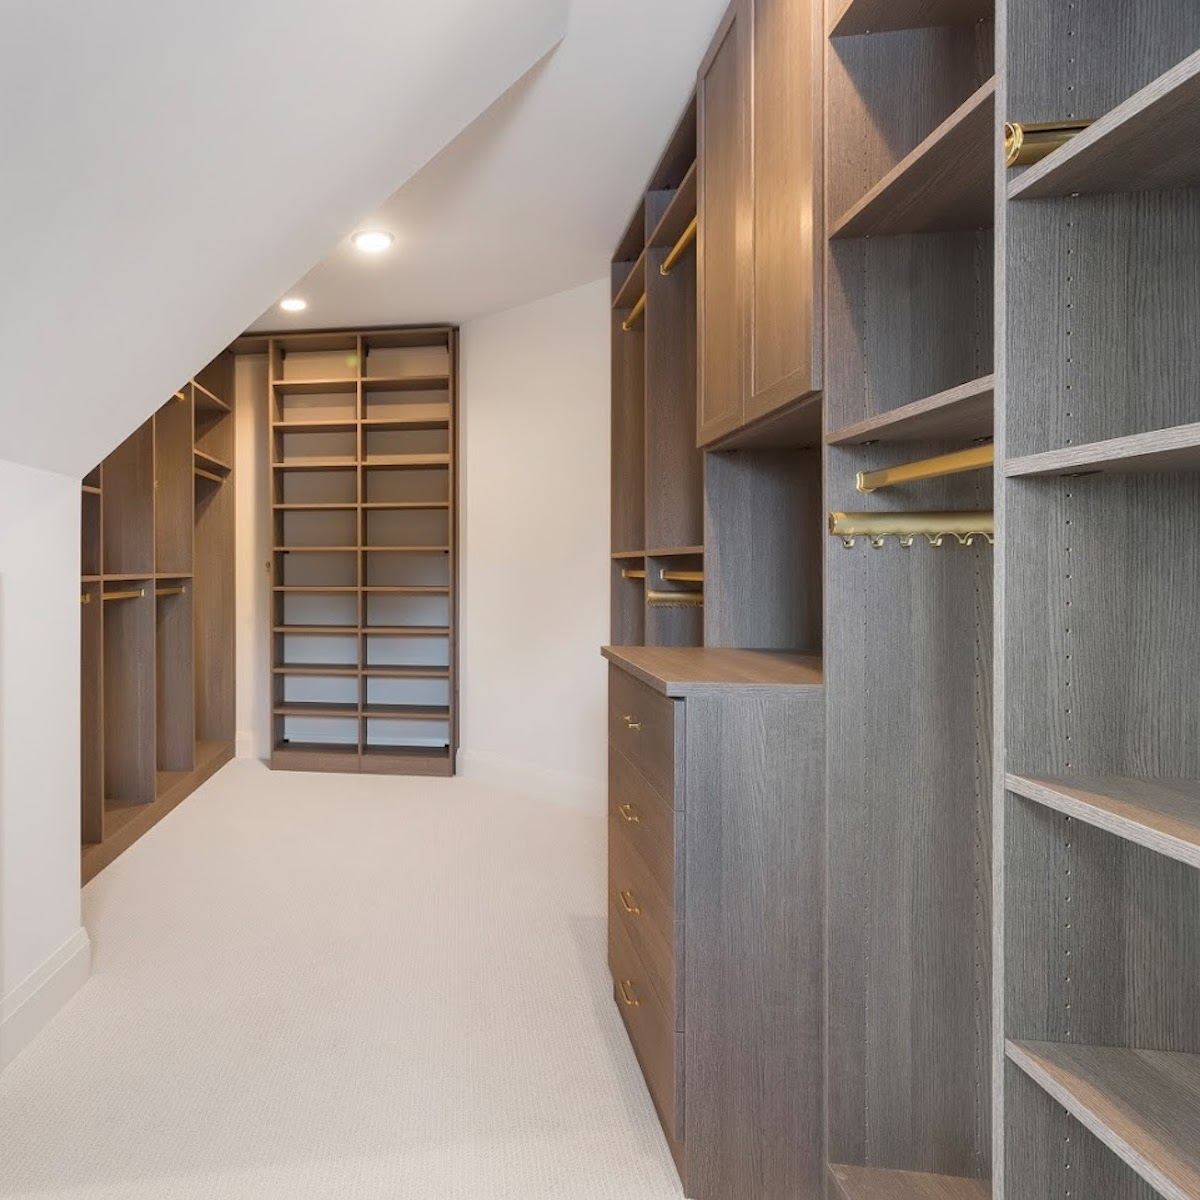 California Closet interior